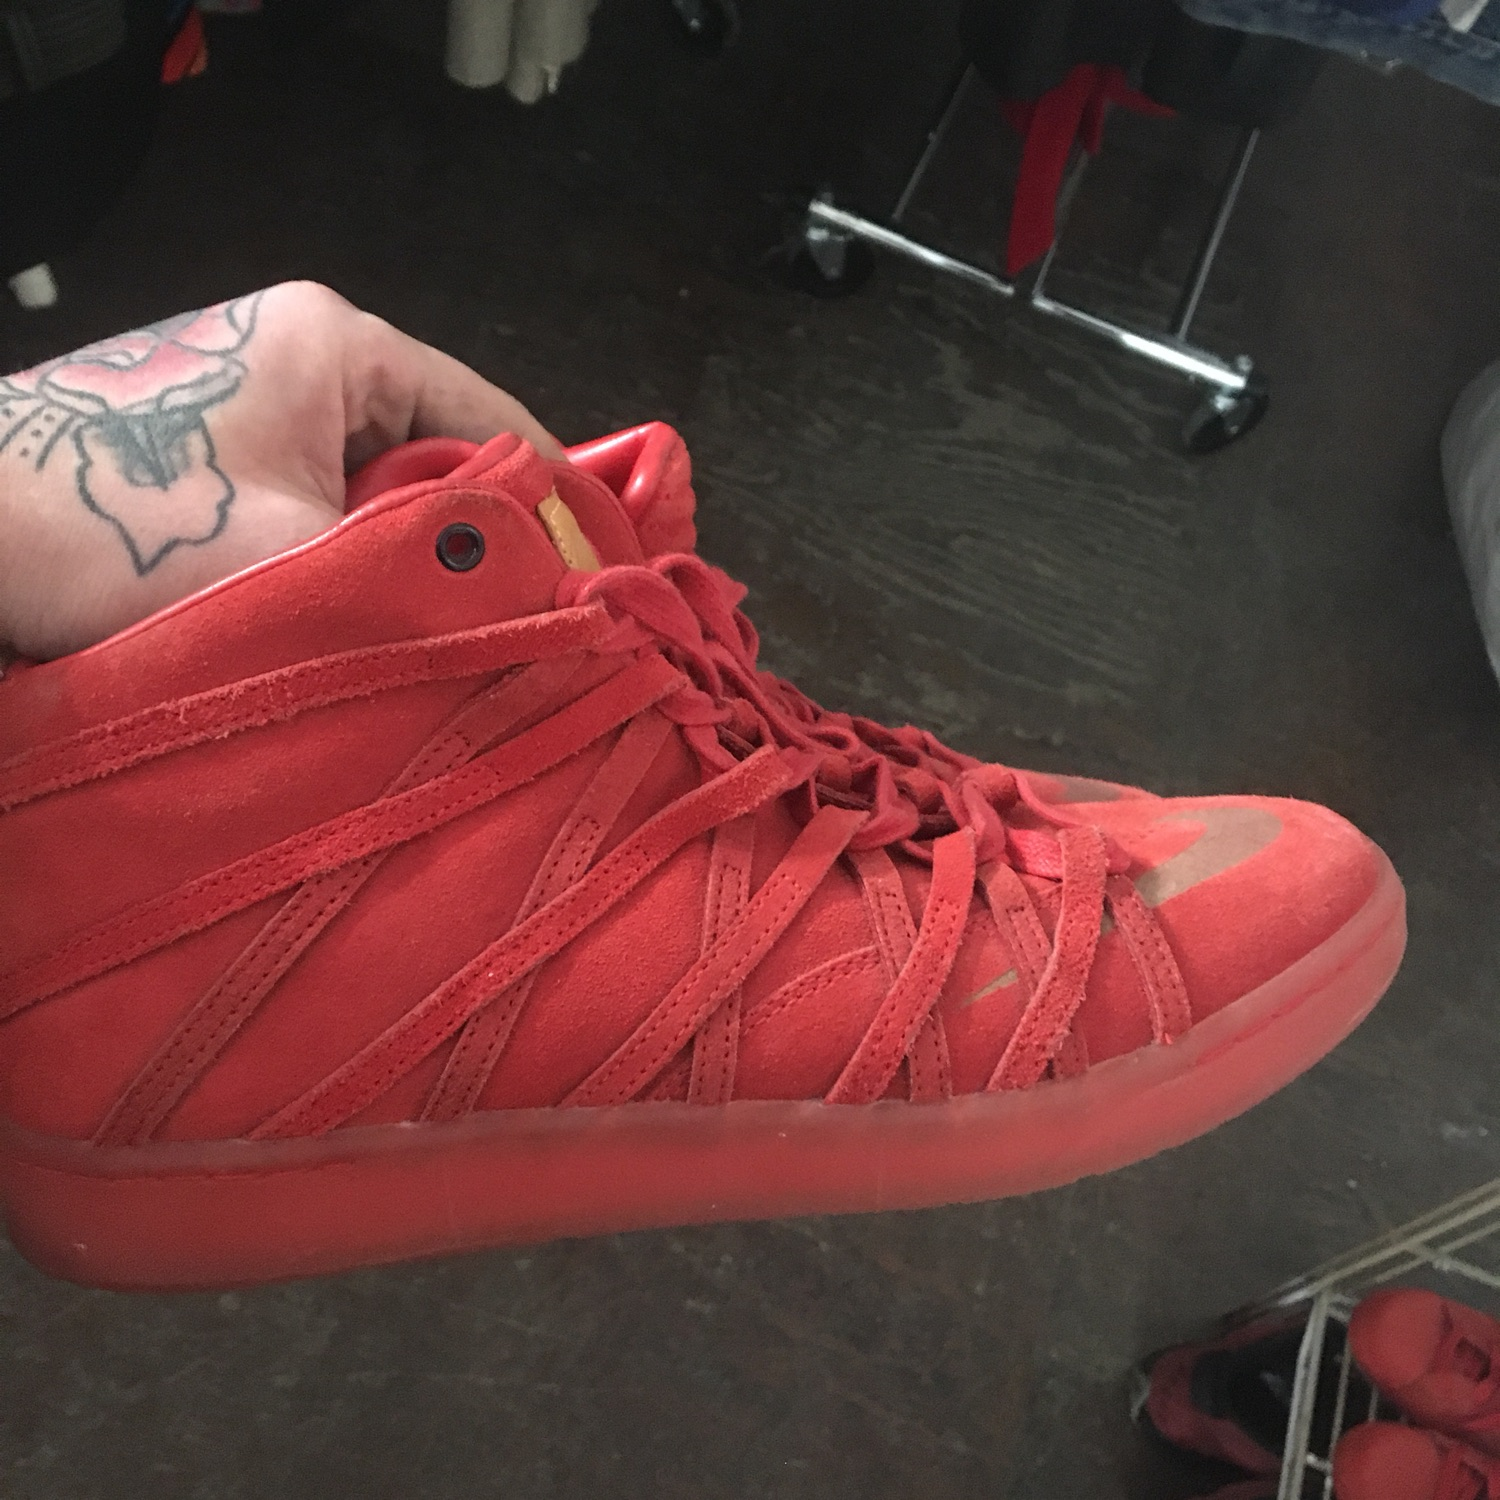 new product fefc8 e25a1 Nike Kd 7 Nsw Lifestyle Weekend Red Suede